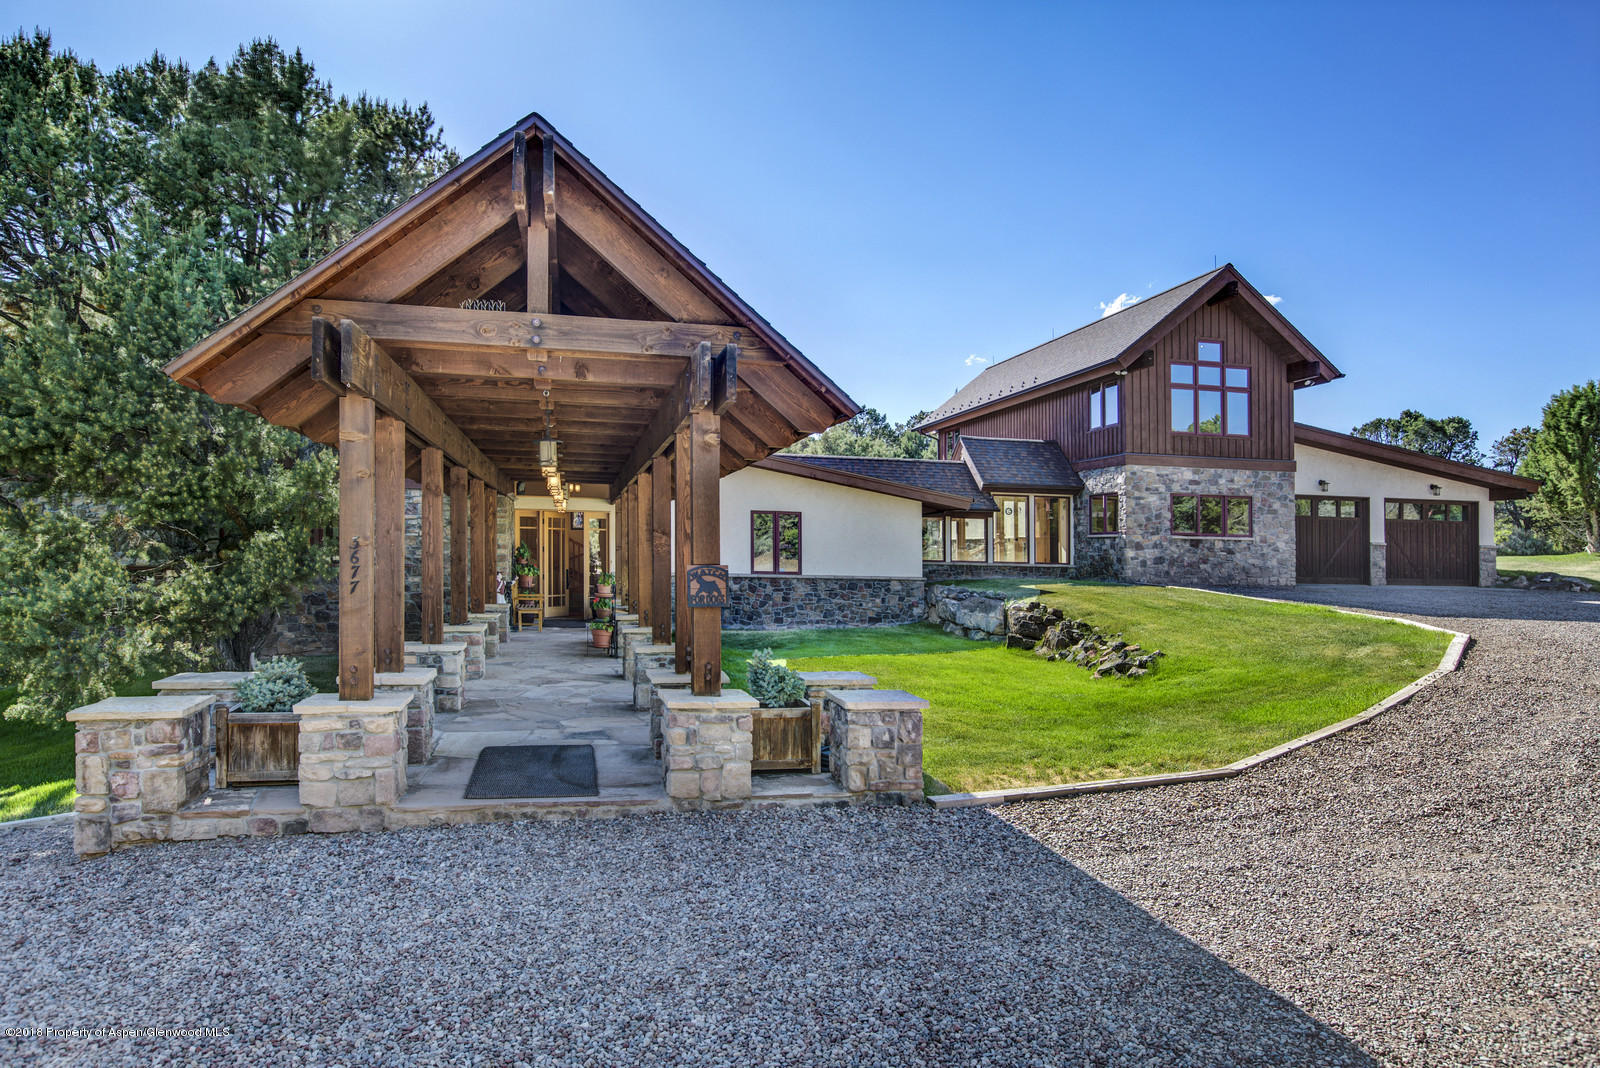 3677 County Rd 103 - Missouri Heights, Colorado